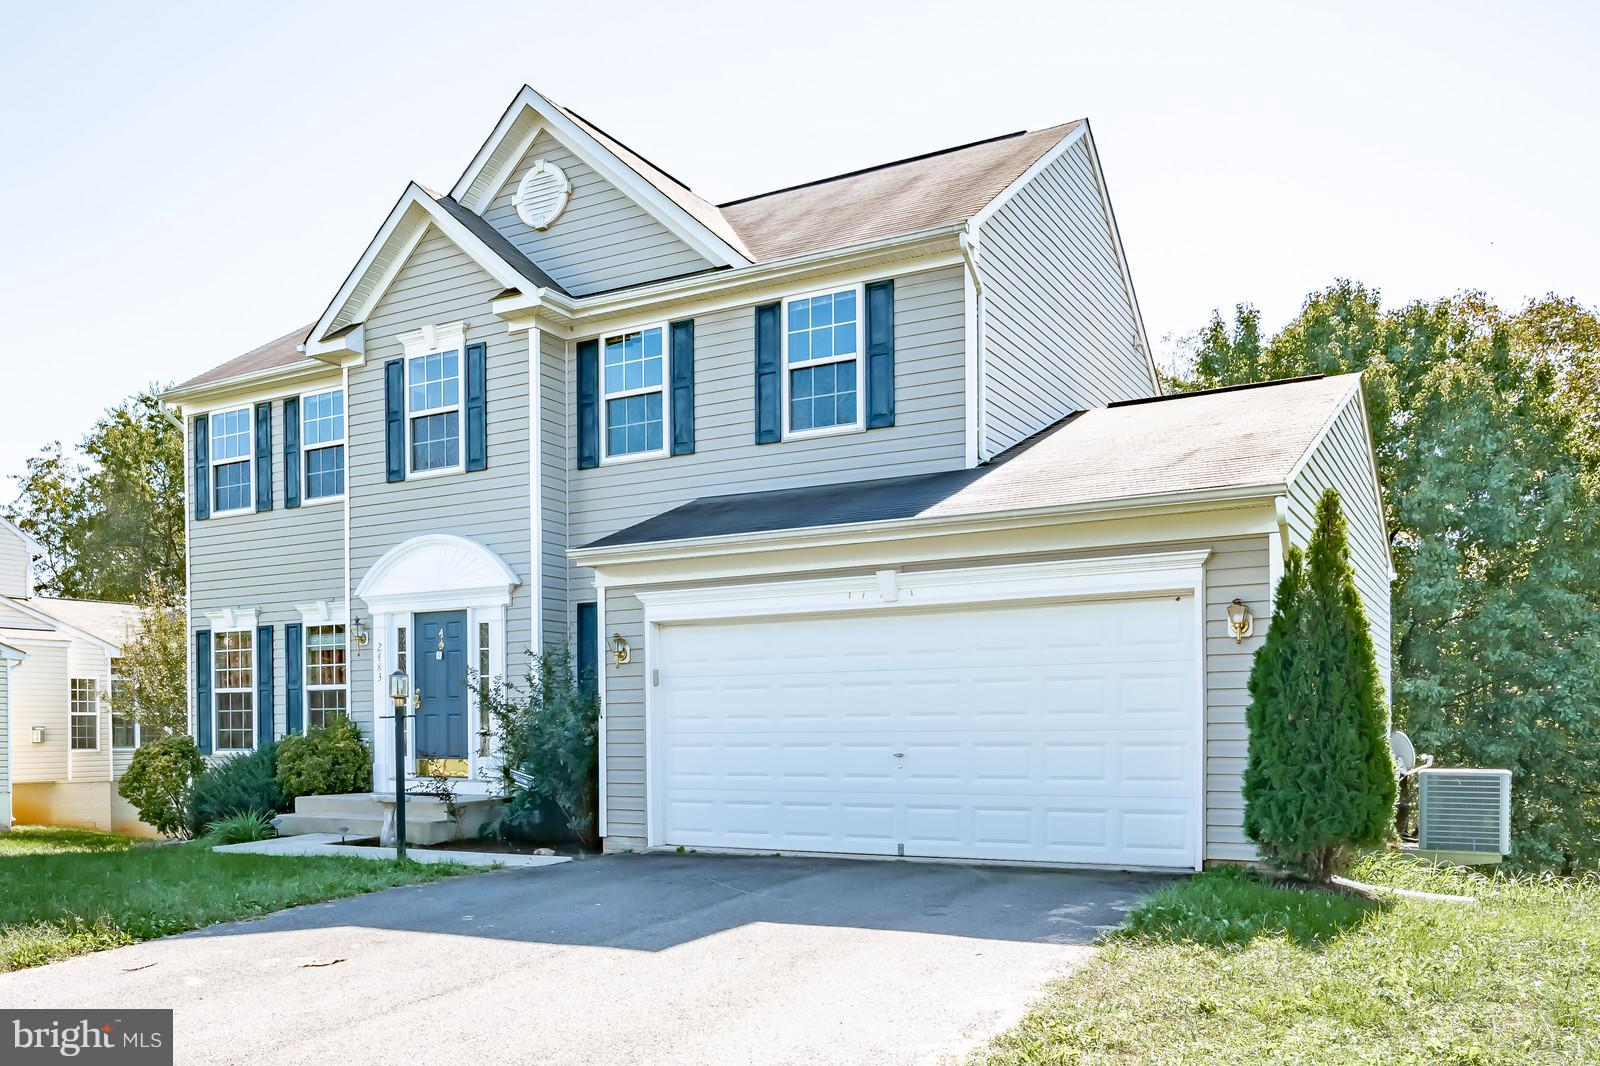 2483 POST OAK DRIVE, Culpeper, VA 22701